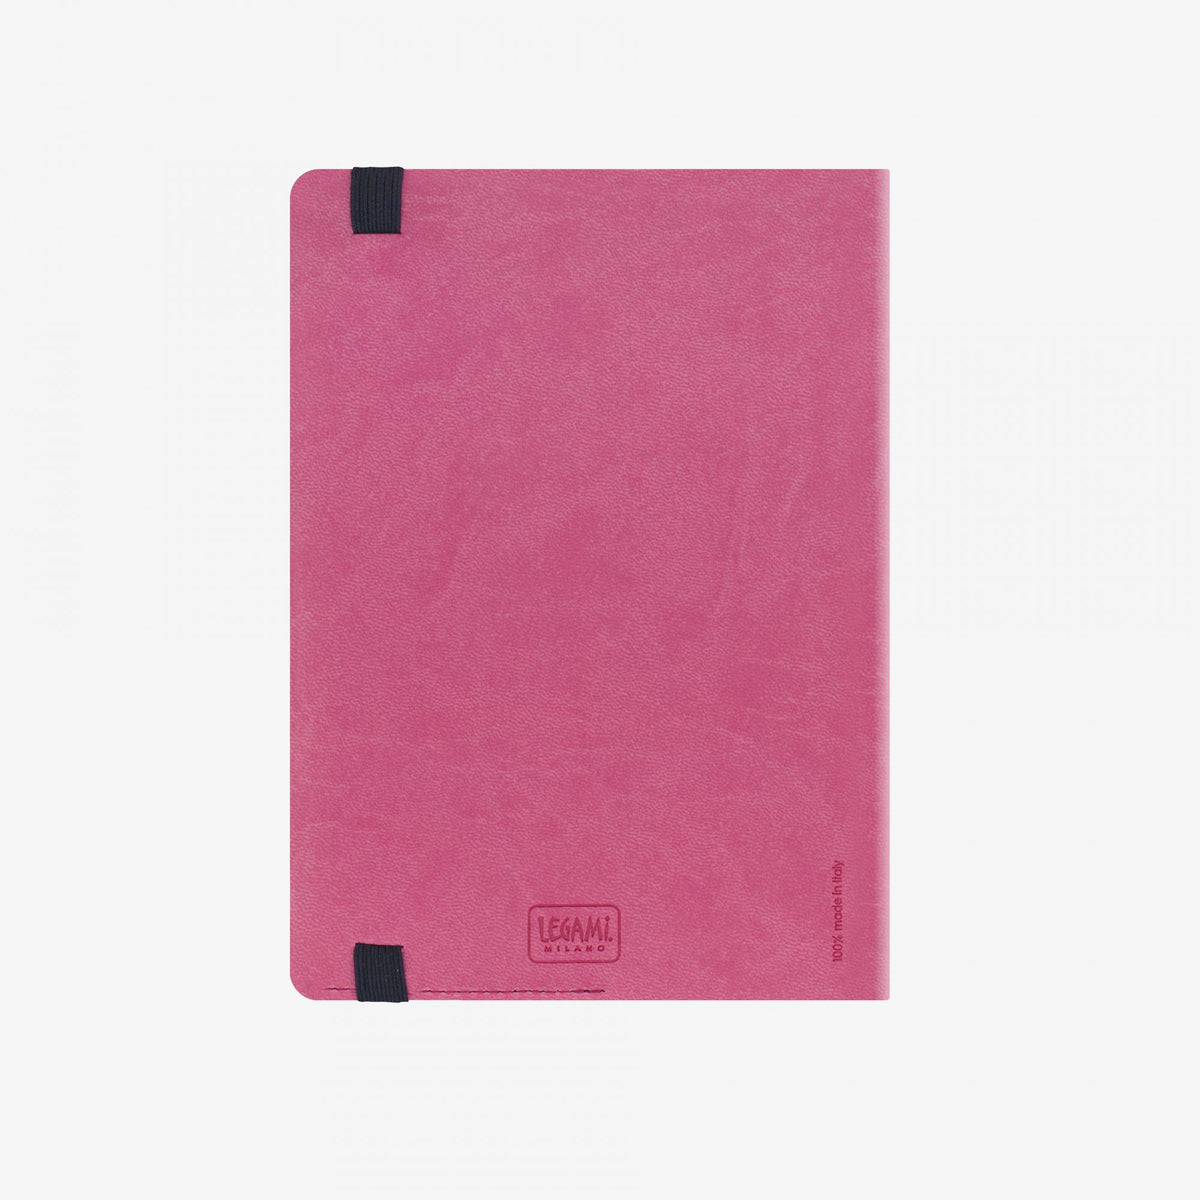 My notebook magenta back legami gifts gift ideas gifting made simple